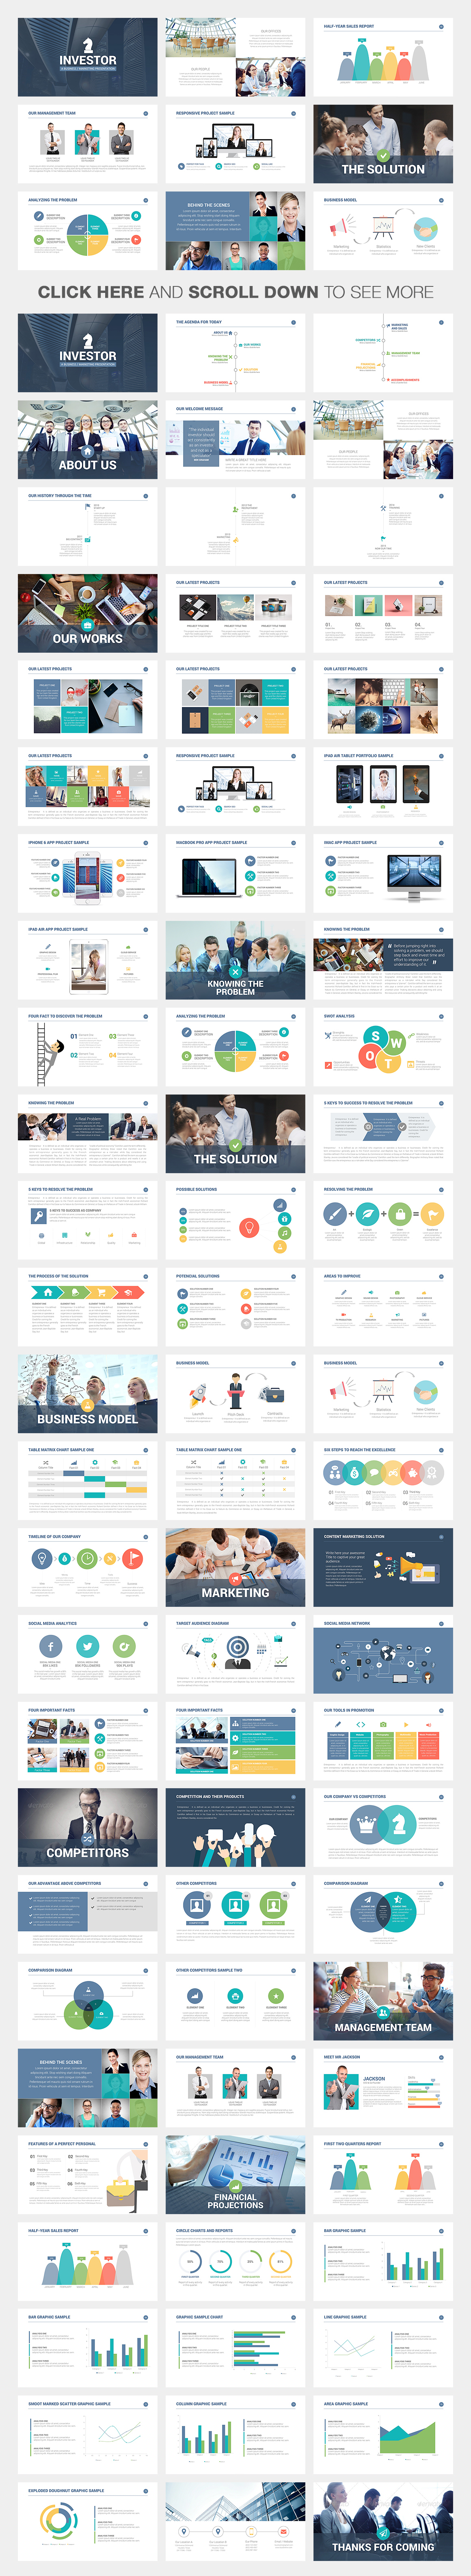 Investor pitch deck powerpoint template on behance now you can download this powerpoint presentation template toneelgroepblik Image collections